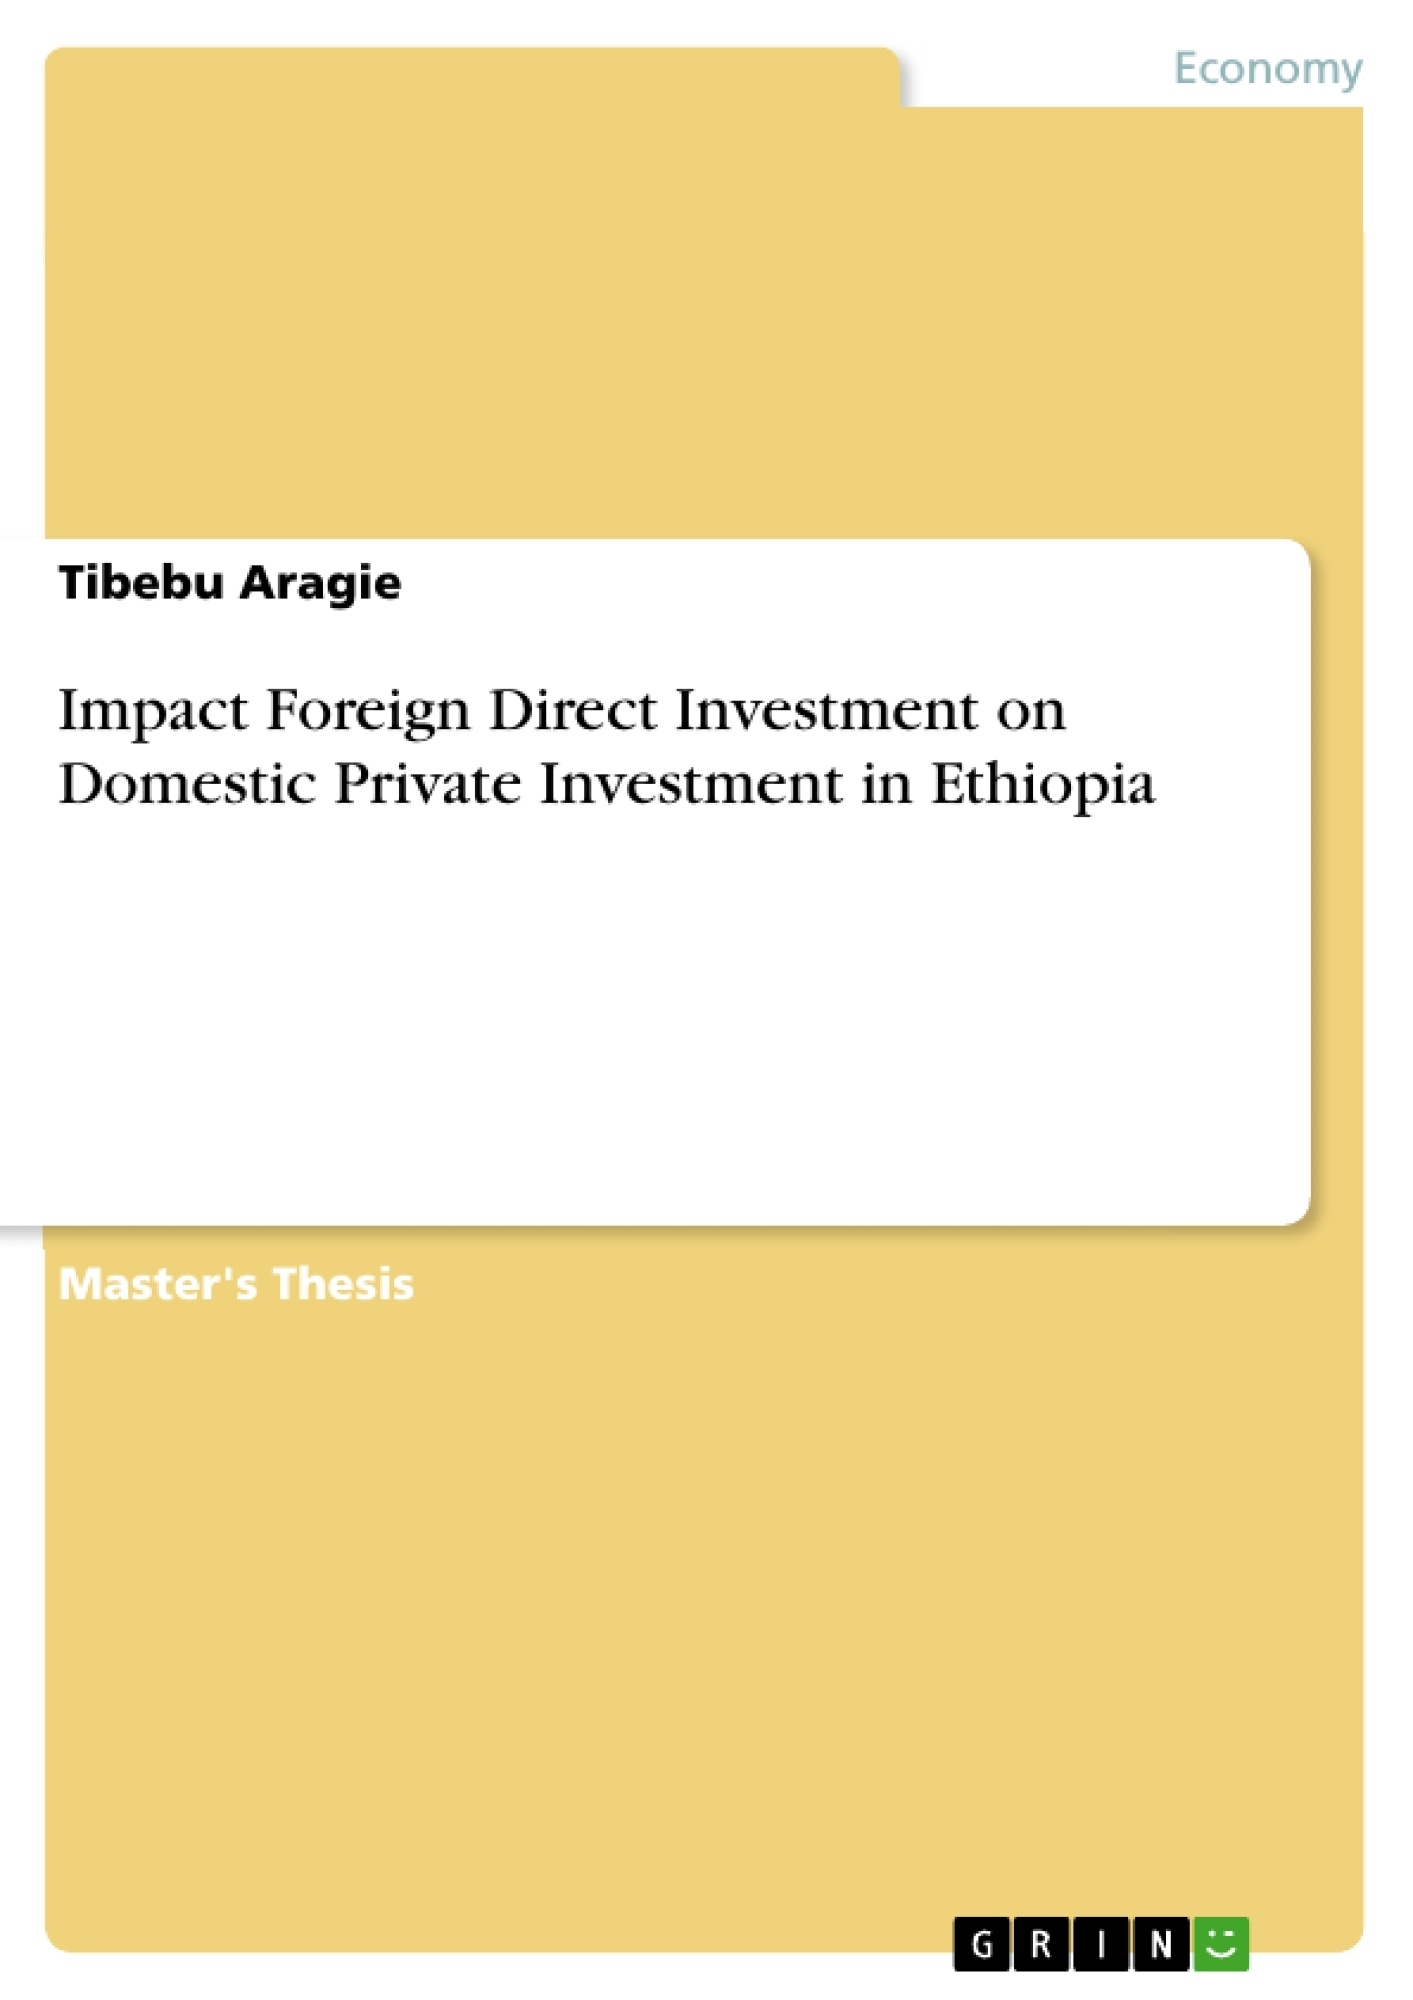 Title: Impact Foreign Direct Investment on Domestic Private Investment in Ethiopia